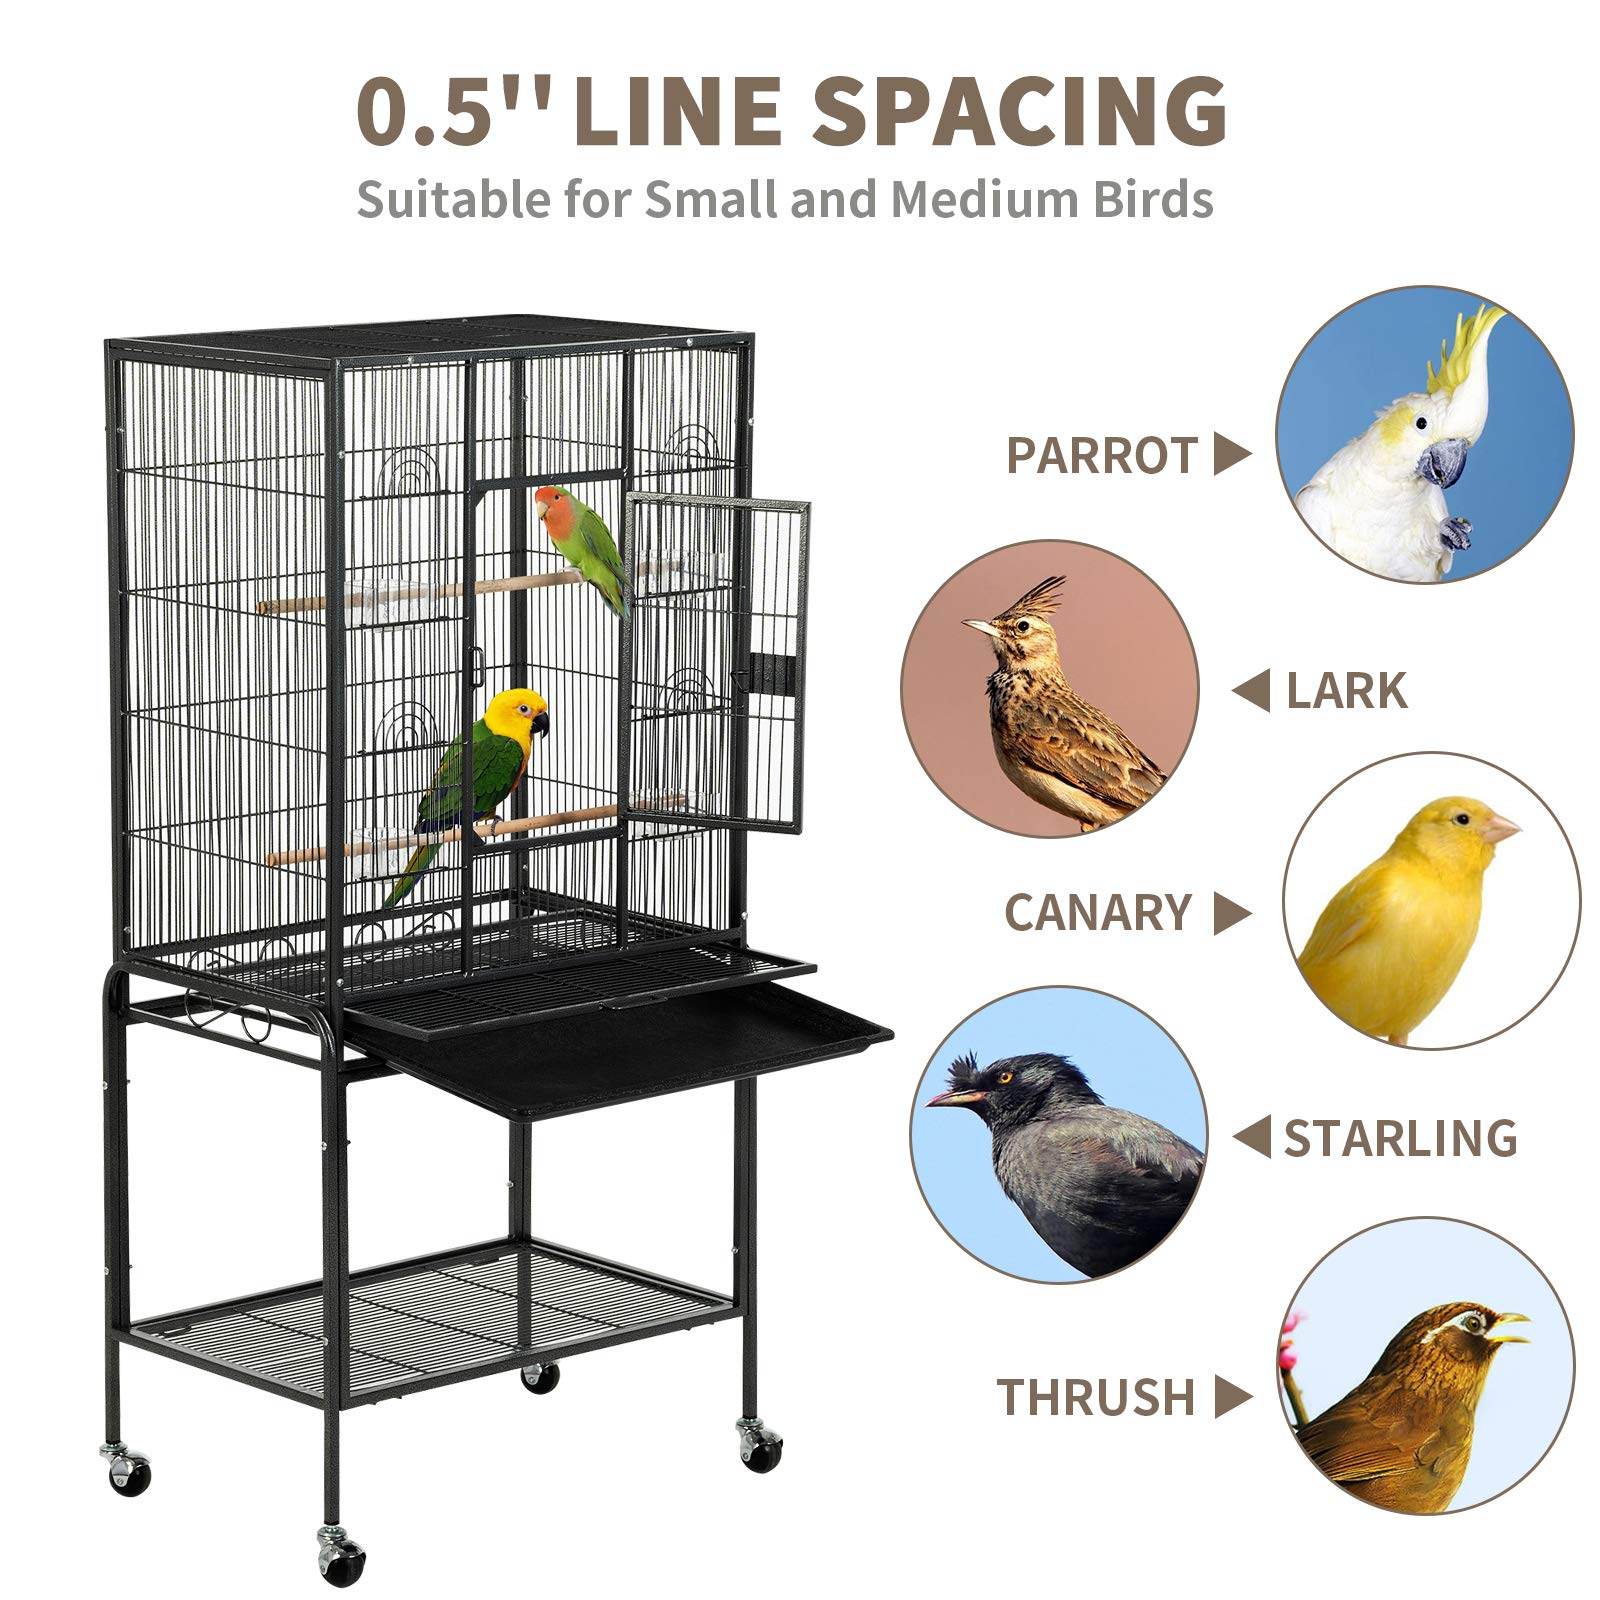 SUNCOO 53 in Large Flight Cage with Detachable Stand,Wrought Iron Heavy Duty Bird Cage for Parrot Budgie Parakeet Cockatoo Wooden Perch Storage Shelf Rolling Wheels, Big Metal Bird Aviary Cage Black by SUNCOO